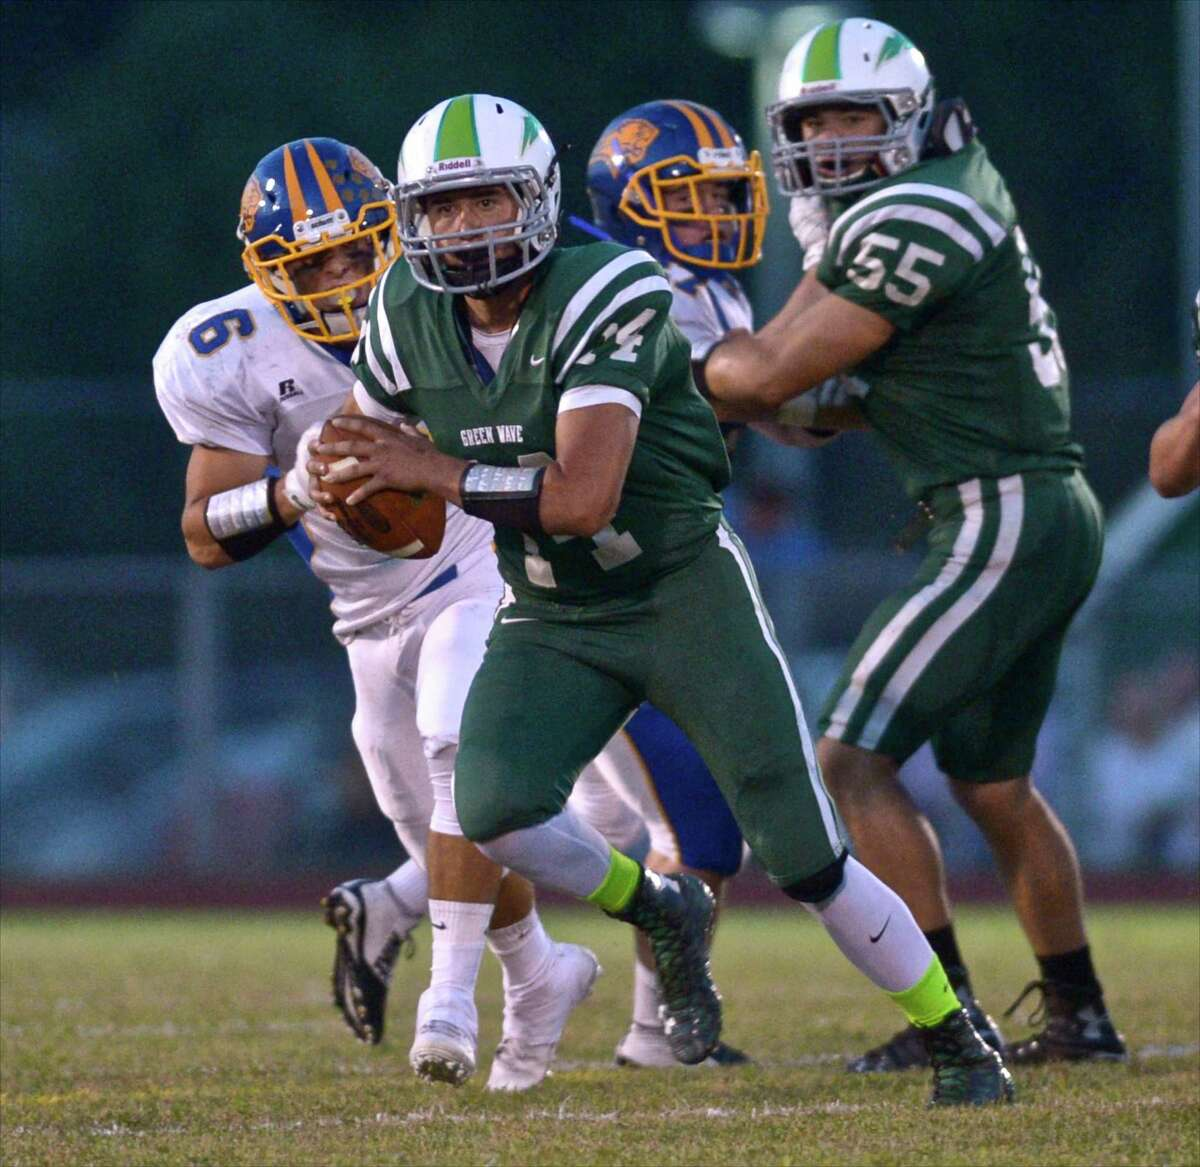 Tyler Hansen (14) Photographs from the high school football game between Brookfield and New Milford high schools on Friday night, September 18, 2015, played at New Milford High School, in New Milford, Conn.